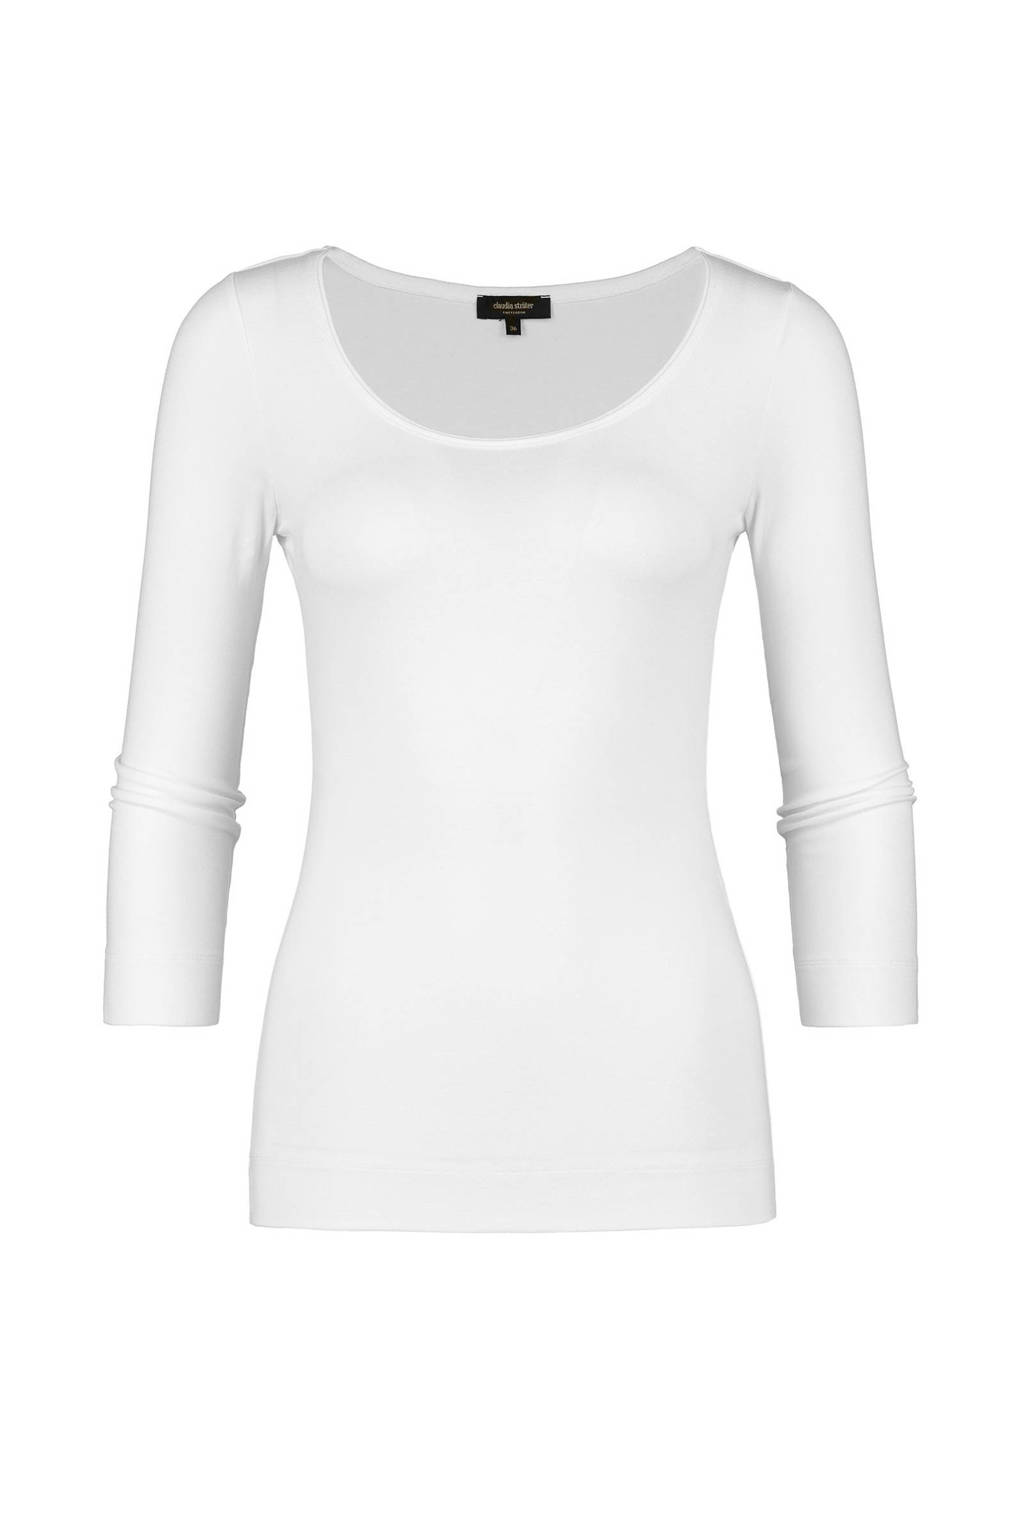 Claudia Sträter basic T-shirt wit, Wit